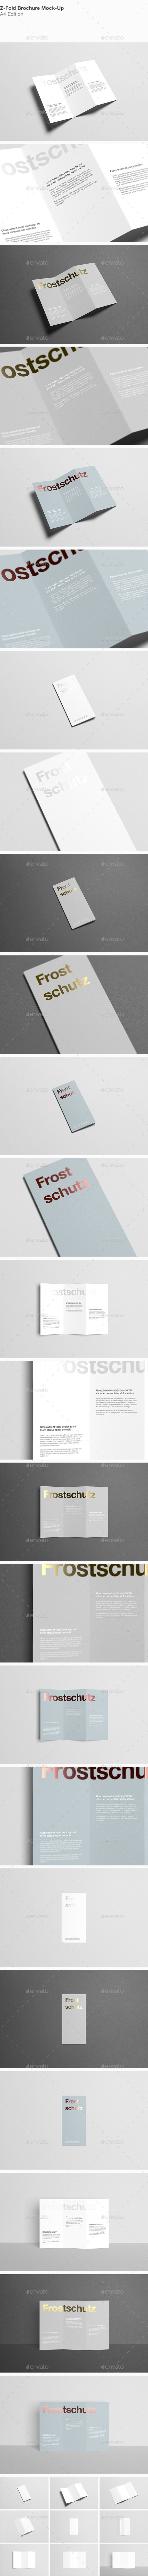 A4 Z-Fold Brochure Mock-Up - Brochures Print